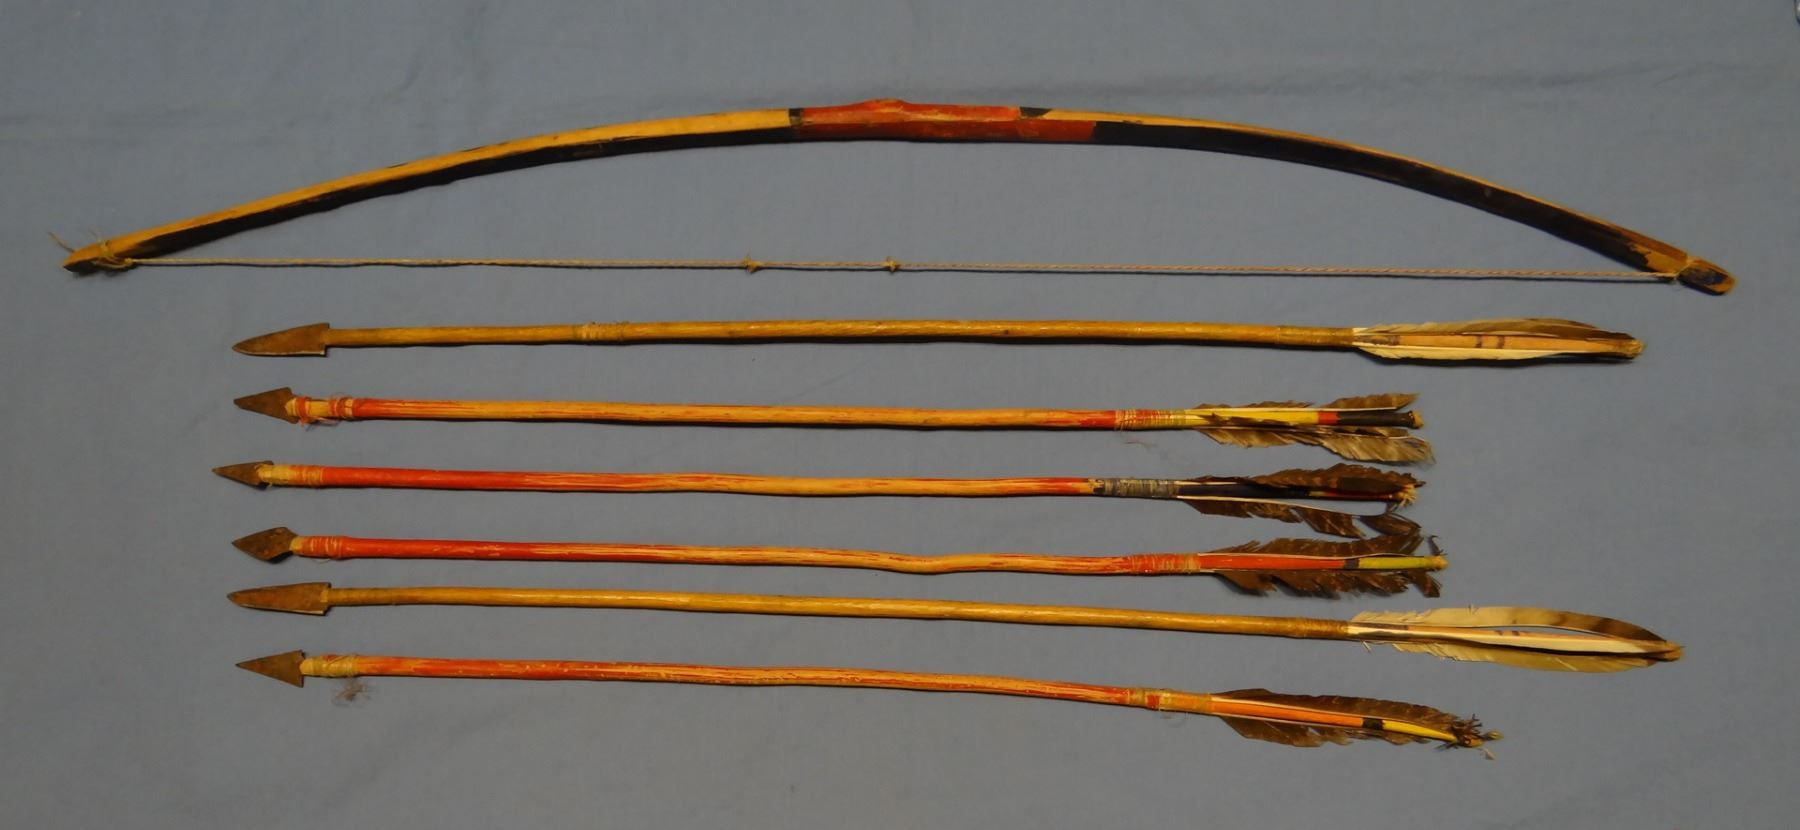 Plains Indian bow & arrows, vintage, 6 feathered arrows with